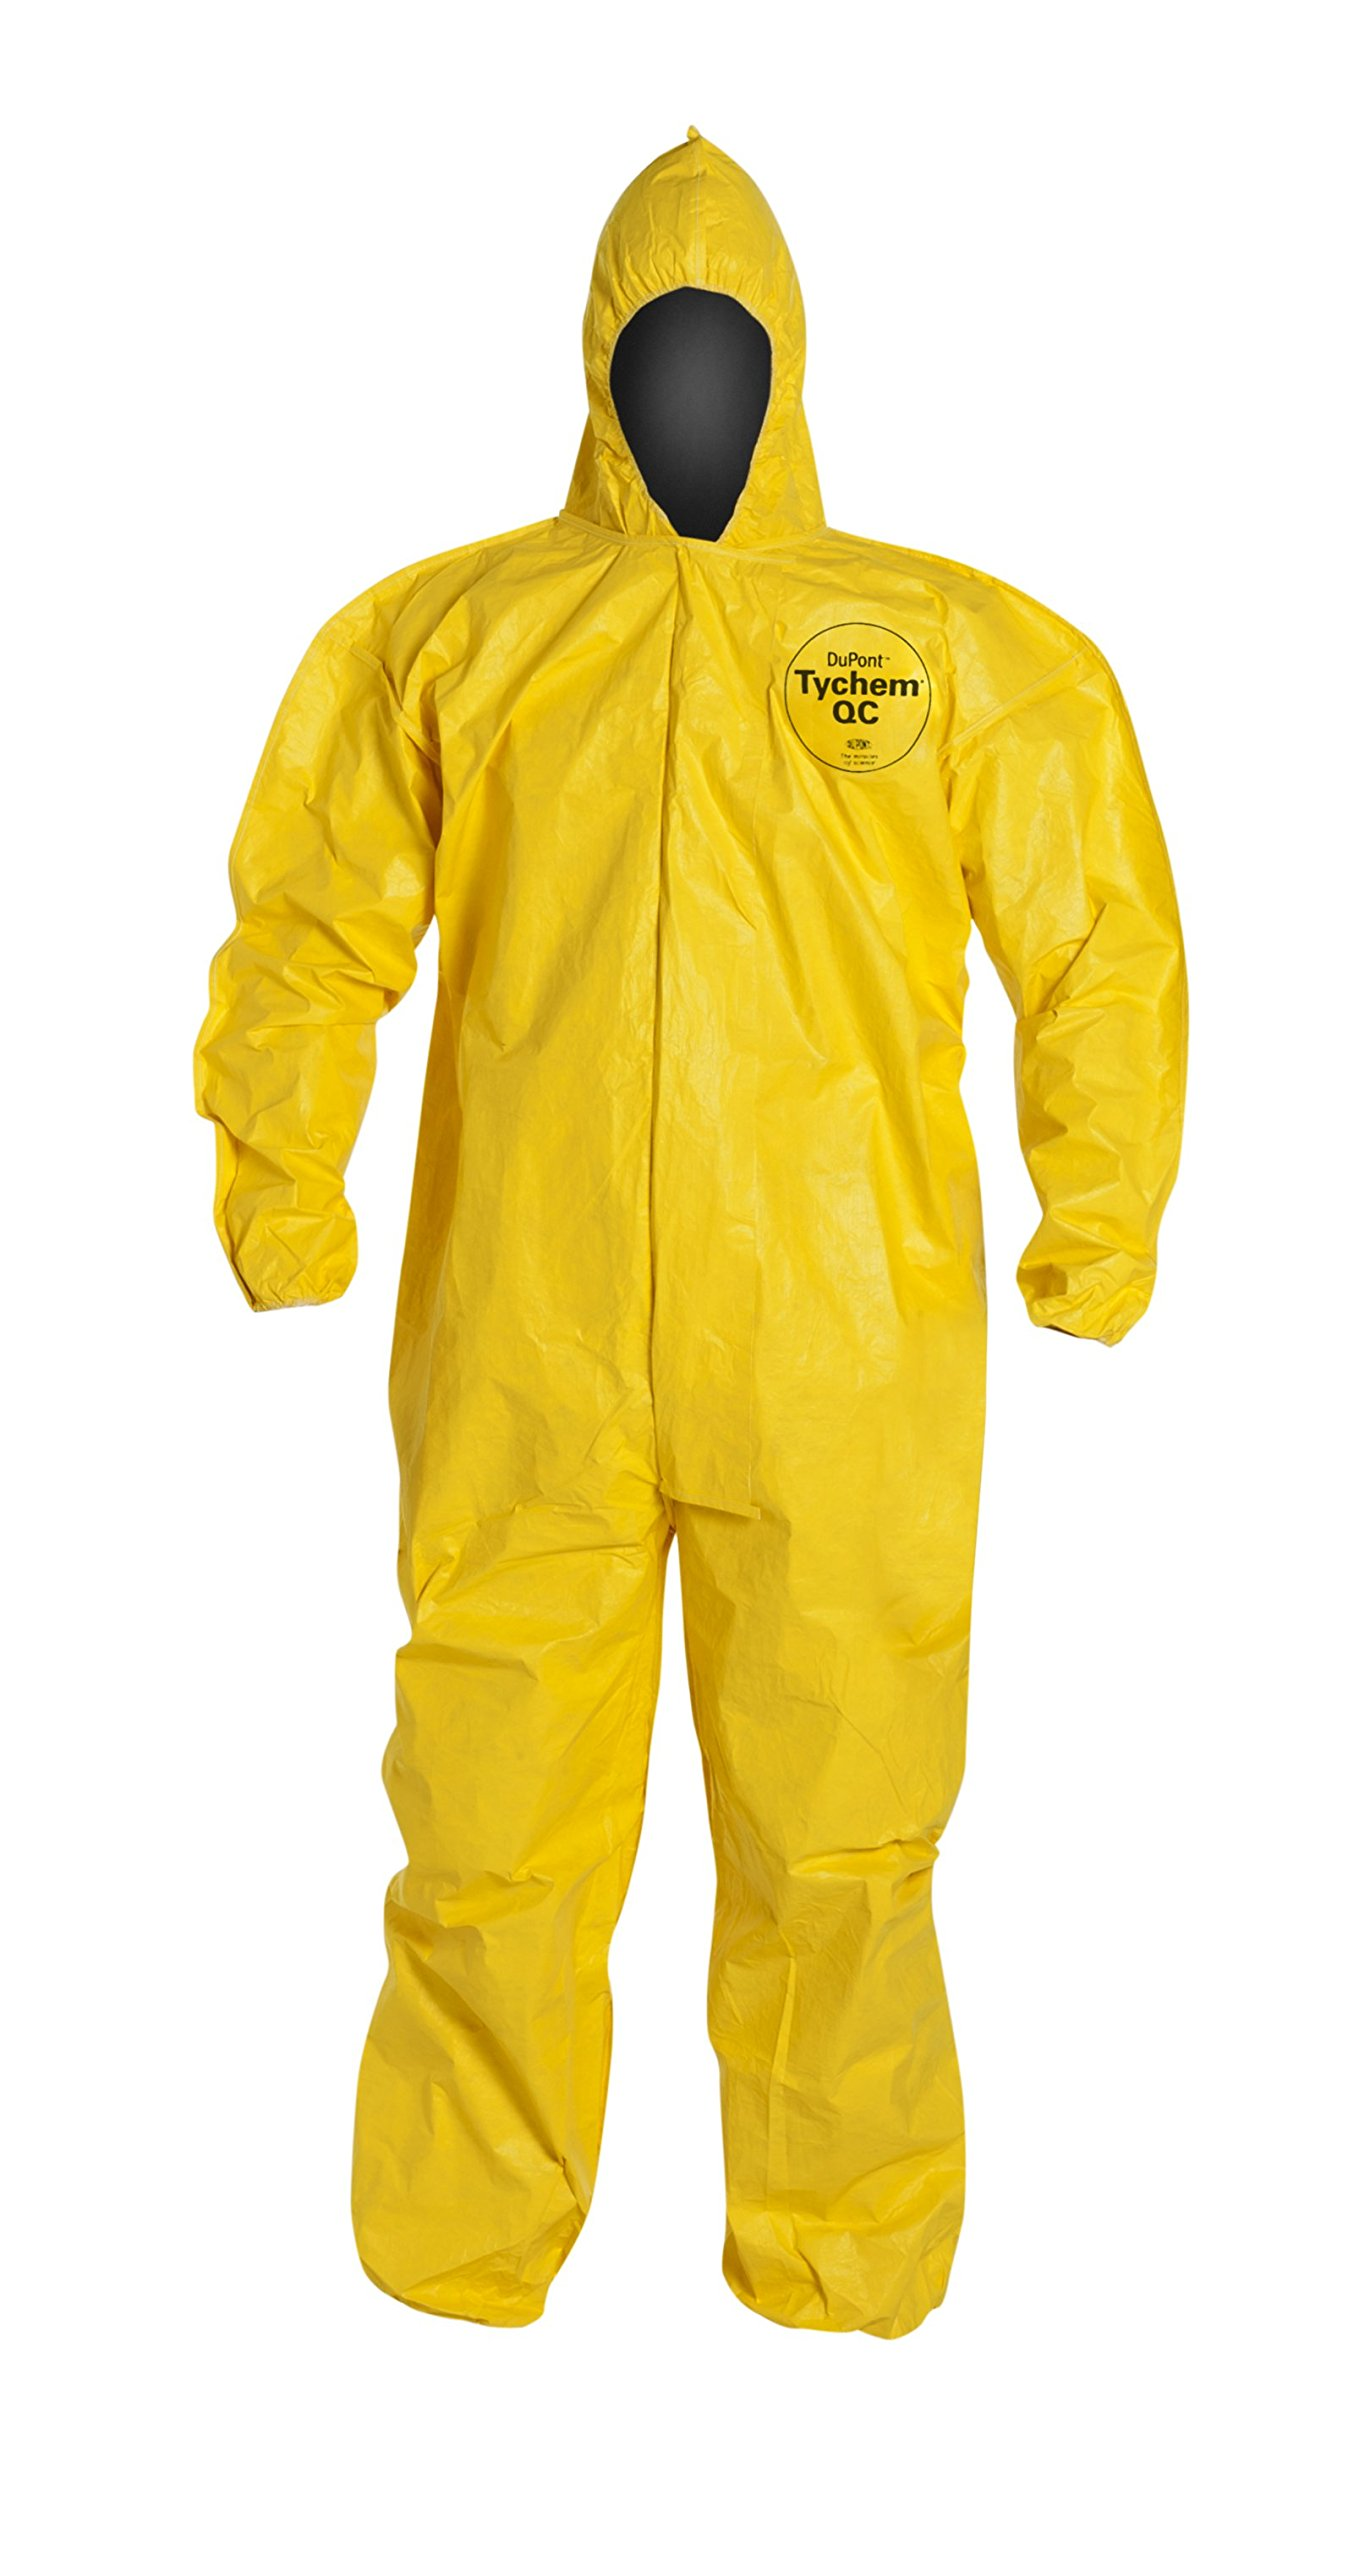 DuPont Tychem 2000 QC127B Disposable Chemical Resistant Coverall with Hood, Elastic Cuff and Bound Seams, Yellow, Large (Pack of 12)